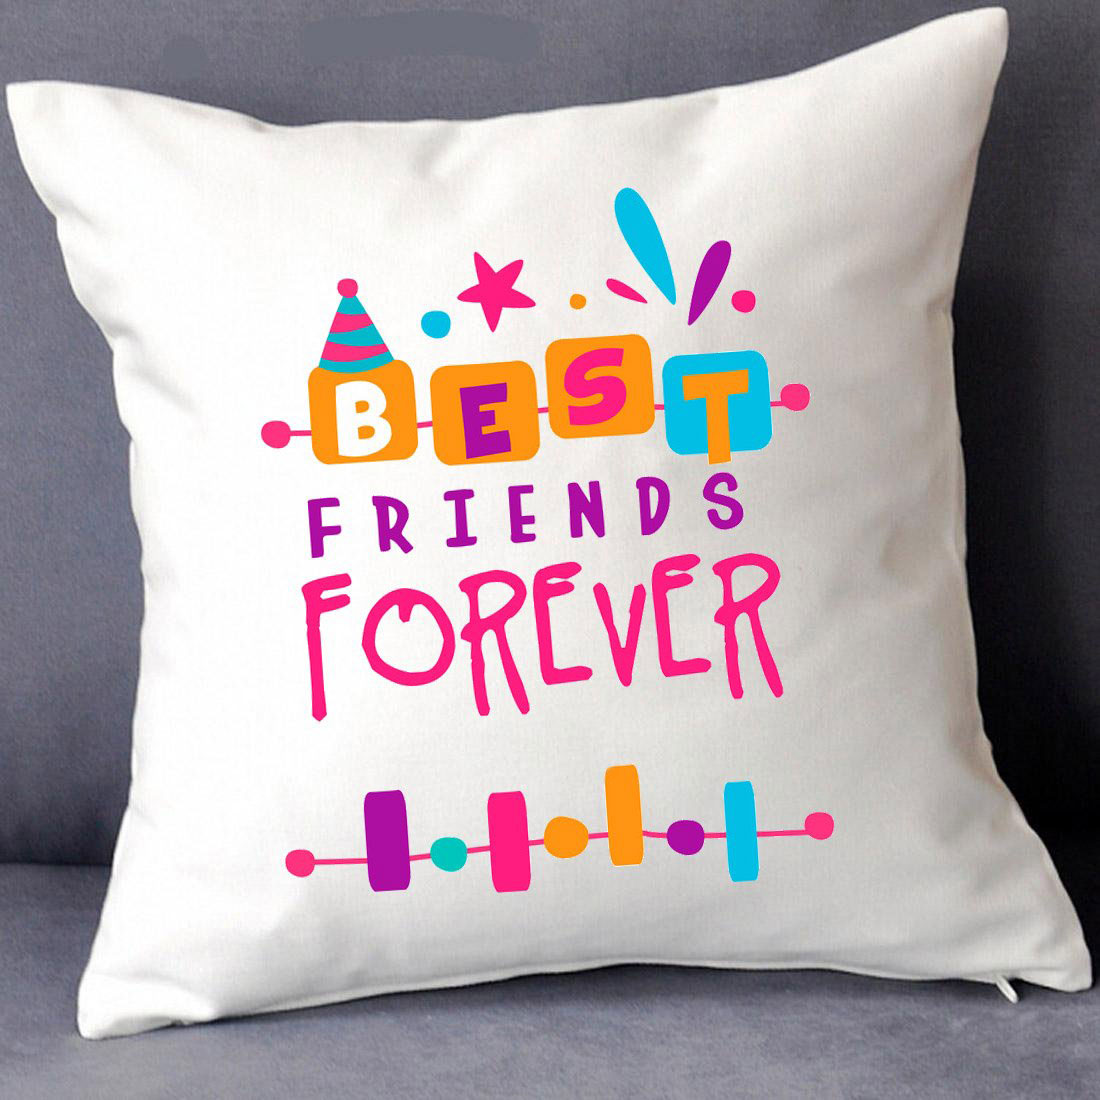 Friend Forever Images for whatsapp